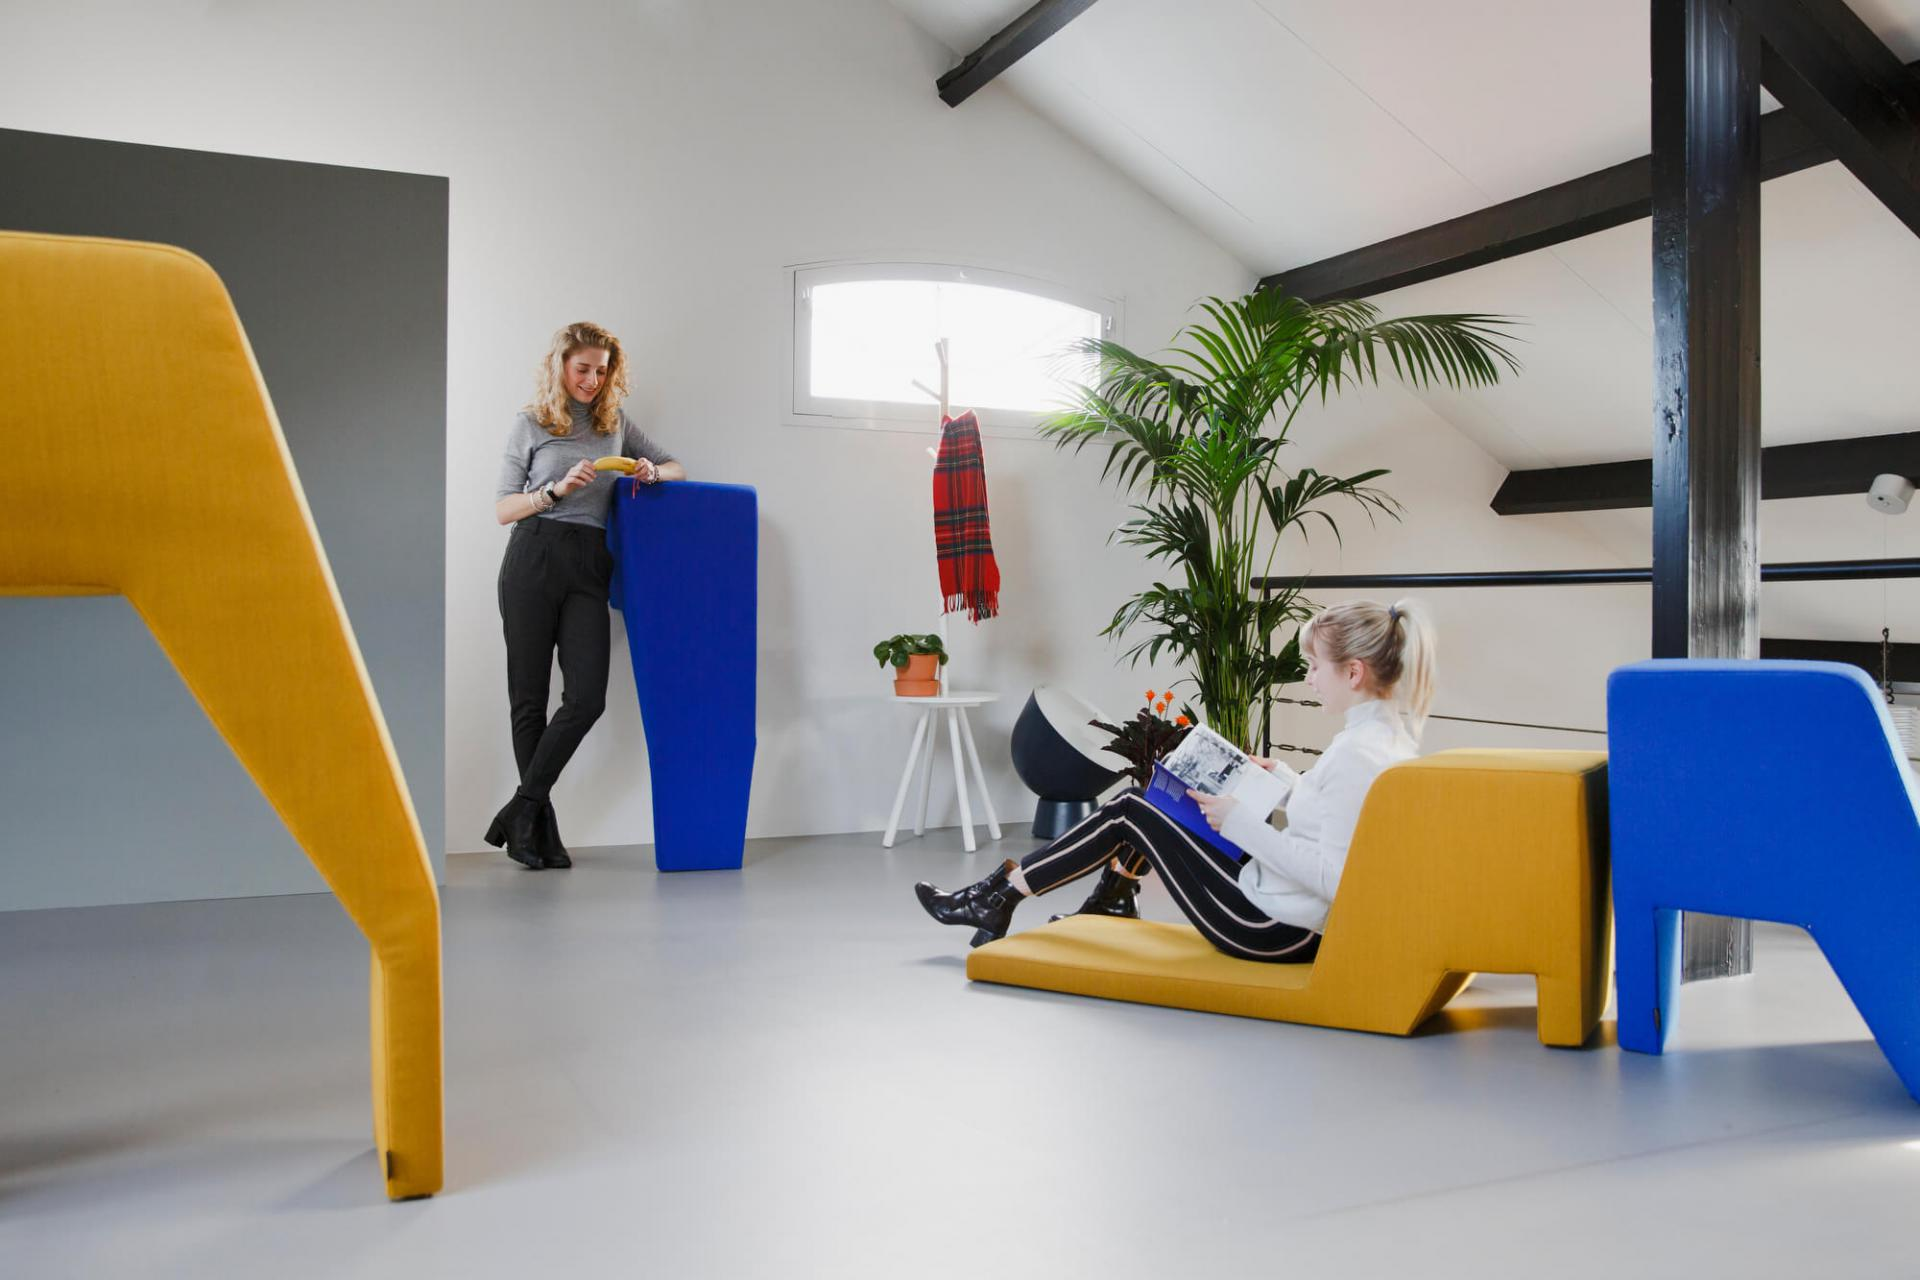 Sofa Banken Rotterdam Prooff Workspace Furniture Design Shaping The Future Of Work